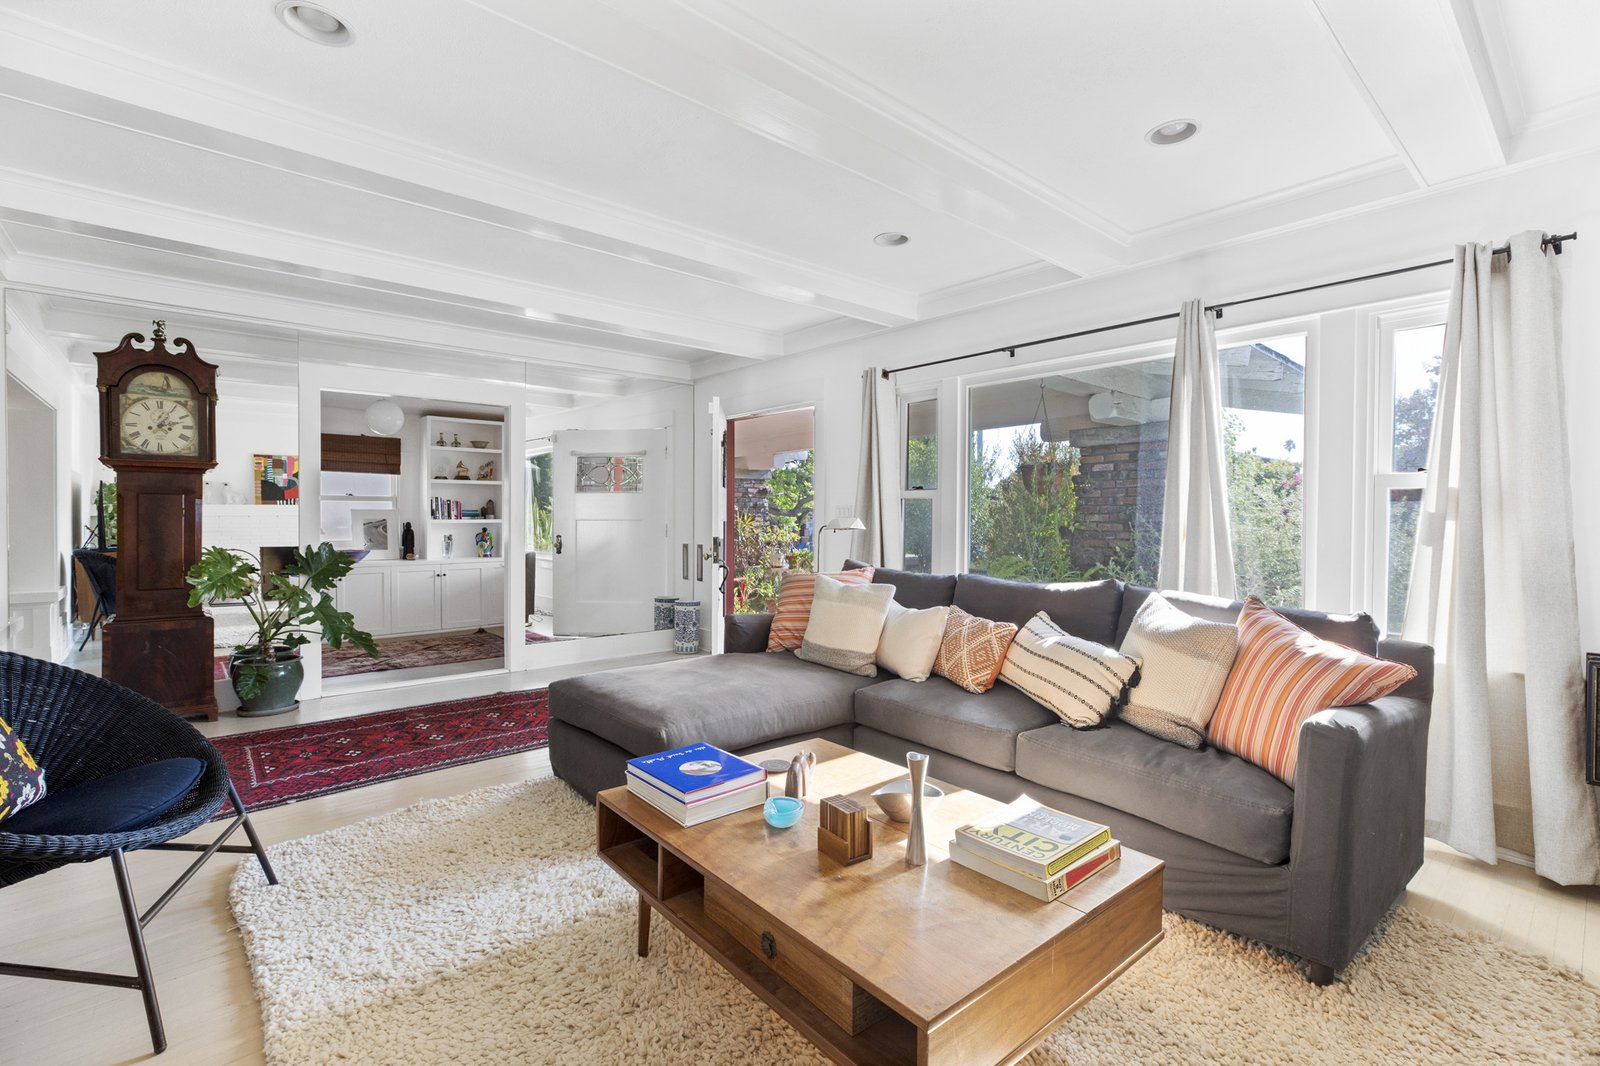 The living area basks in natural light thanks to a large picture window along one wall. The neutral, all-white color palette was recently refreshed in preparation for the sale.   Photo 3 of 16 in An Artfully Reimagined California Craftsman Asks $1.2M